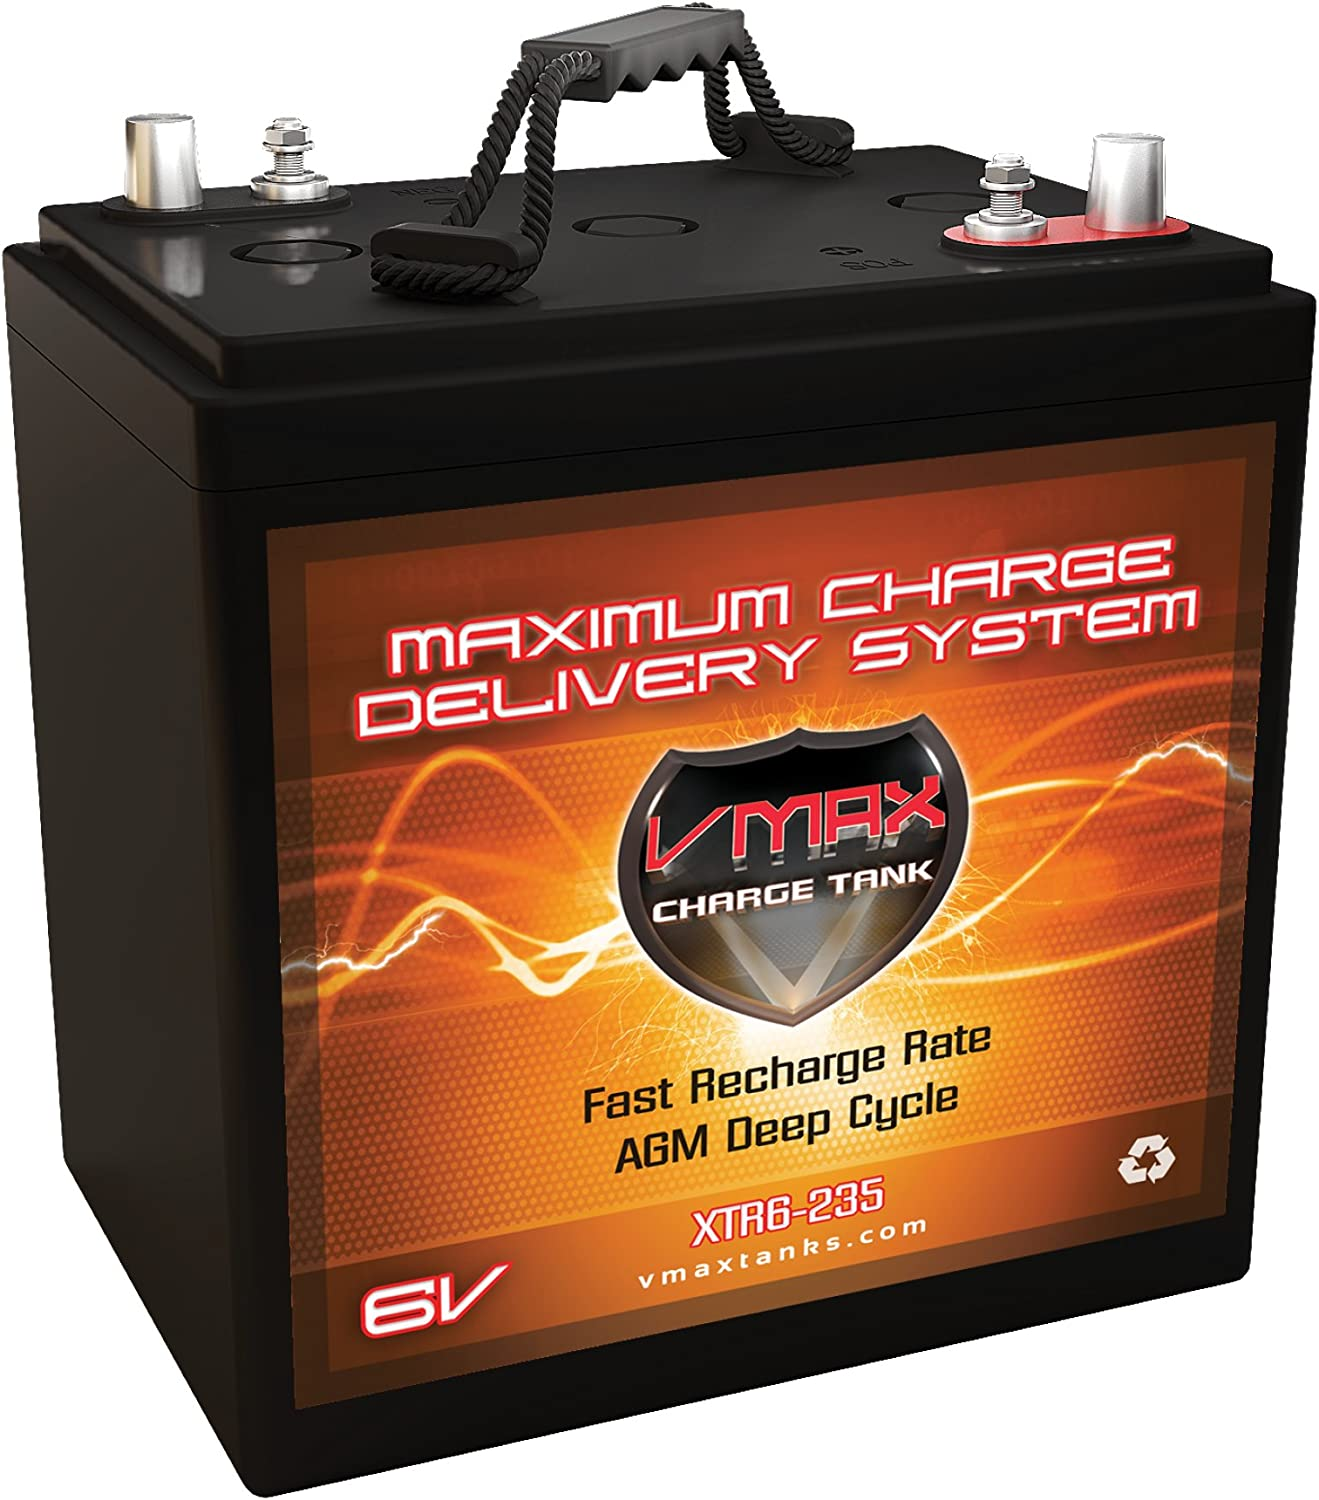 VMAX Large-scale sale XTR6-235 6Volt 235ah Golf Cart Replaces GC-2 Battery AGM Attention brand In